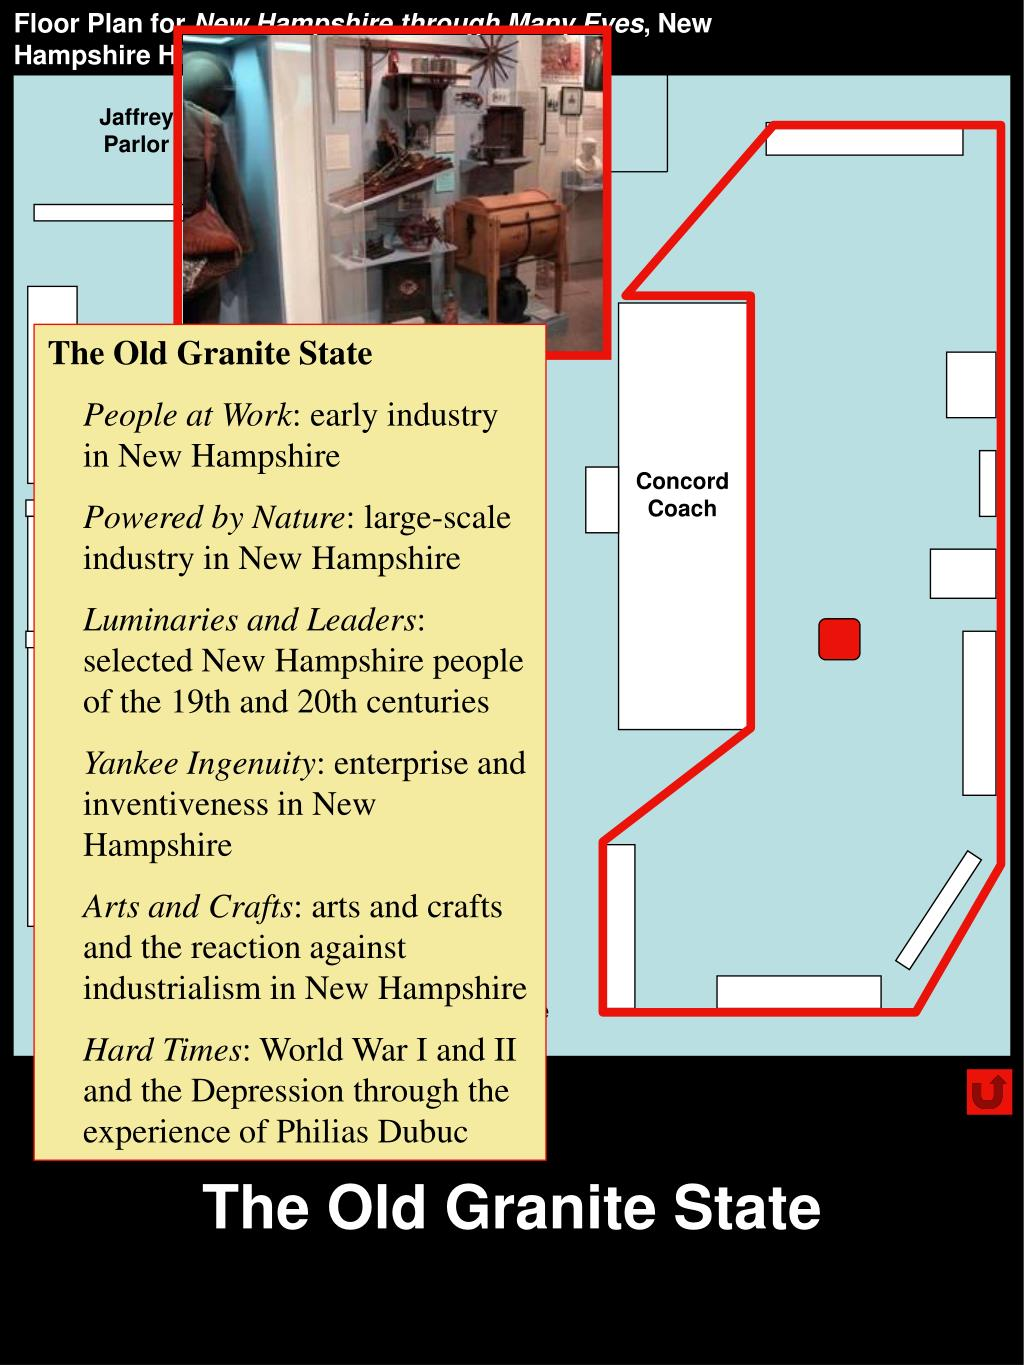 The Old Granite State